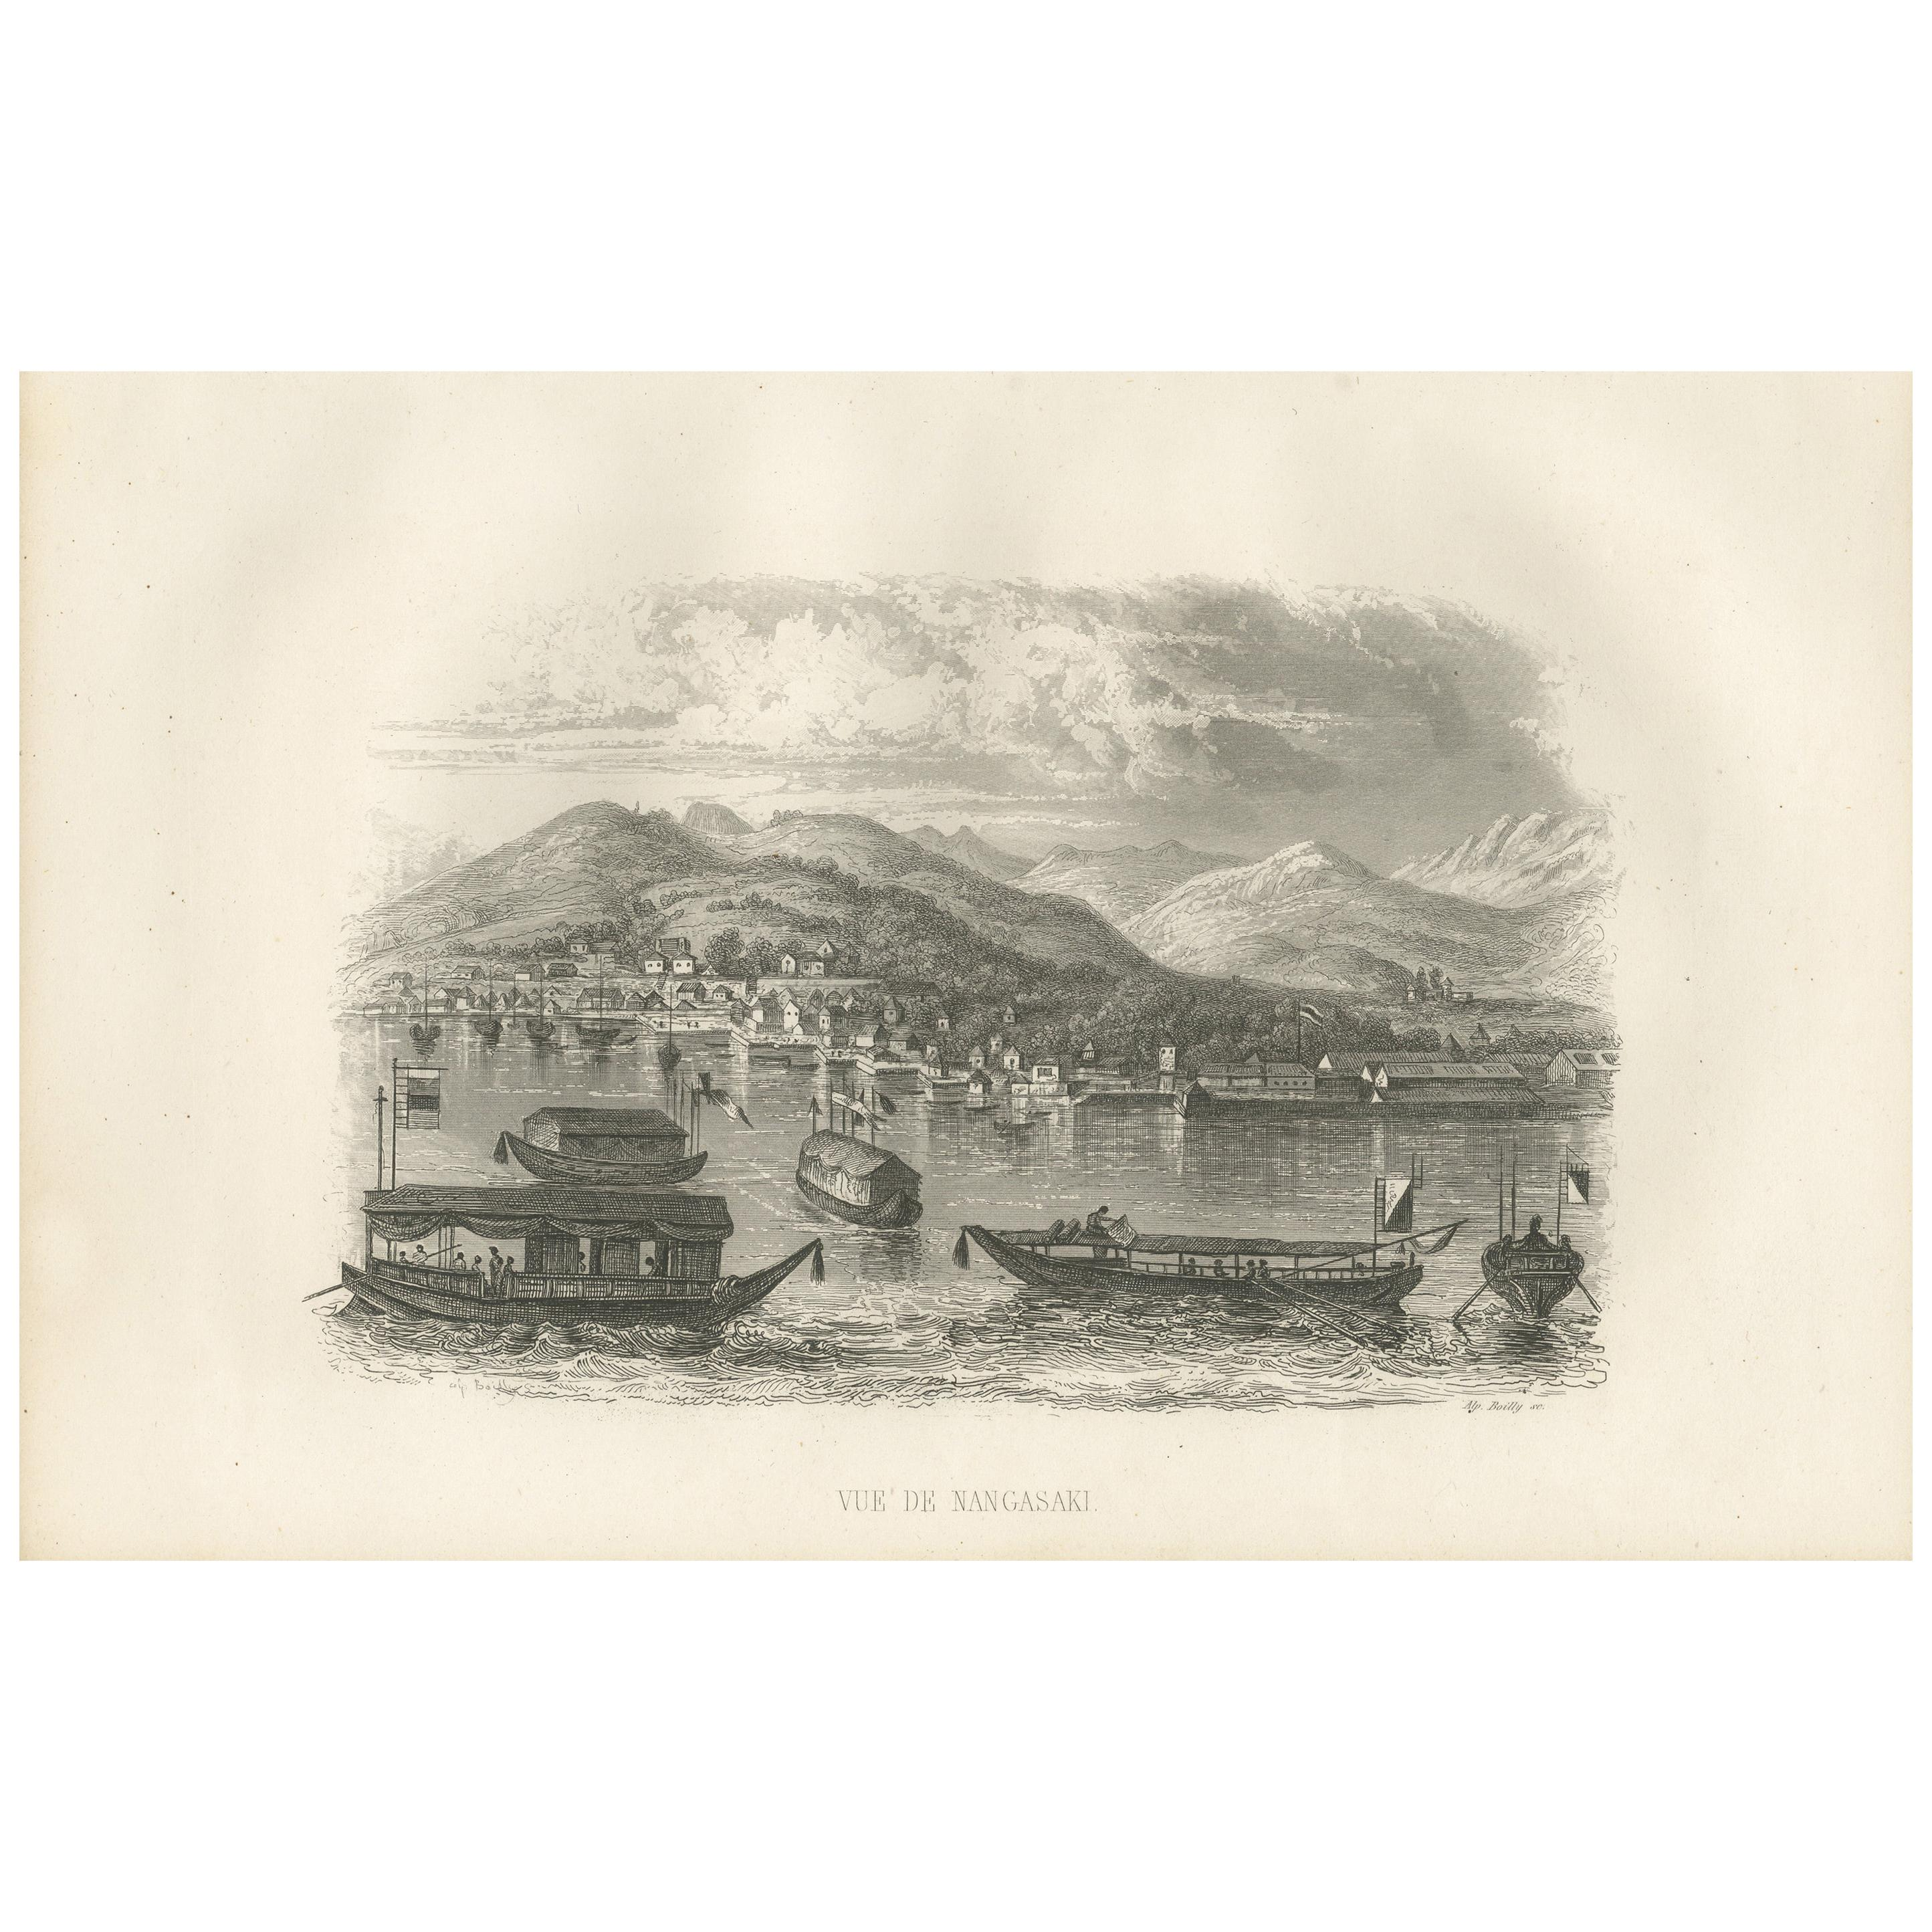 Antique Print with a View of Nagasaki by D'Urville, 1853